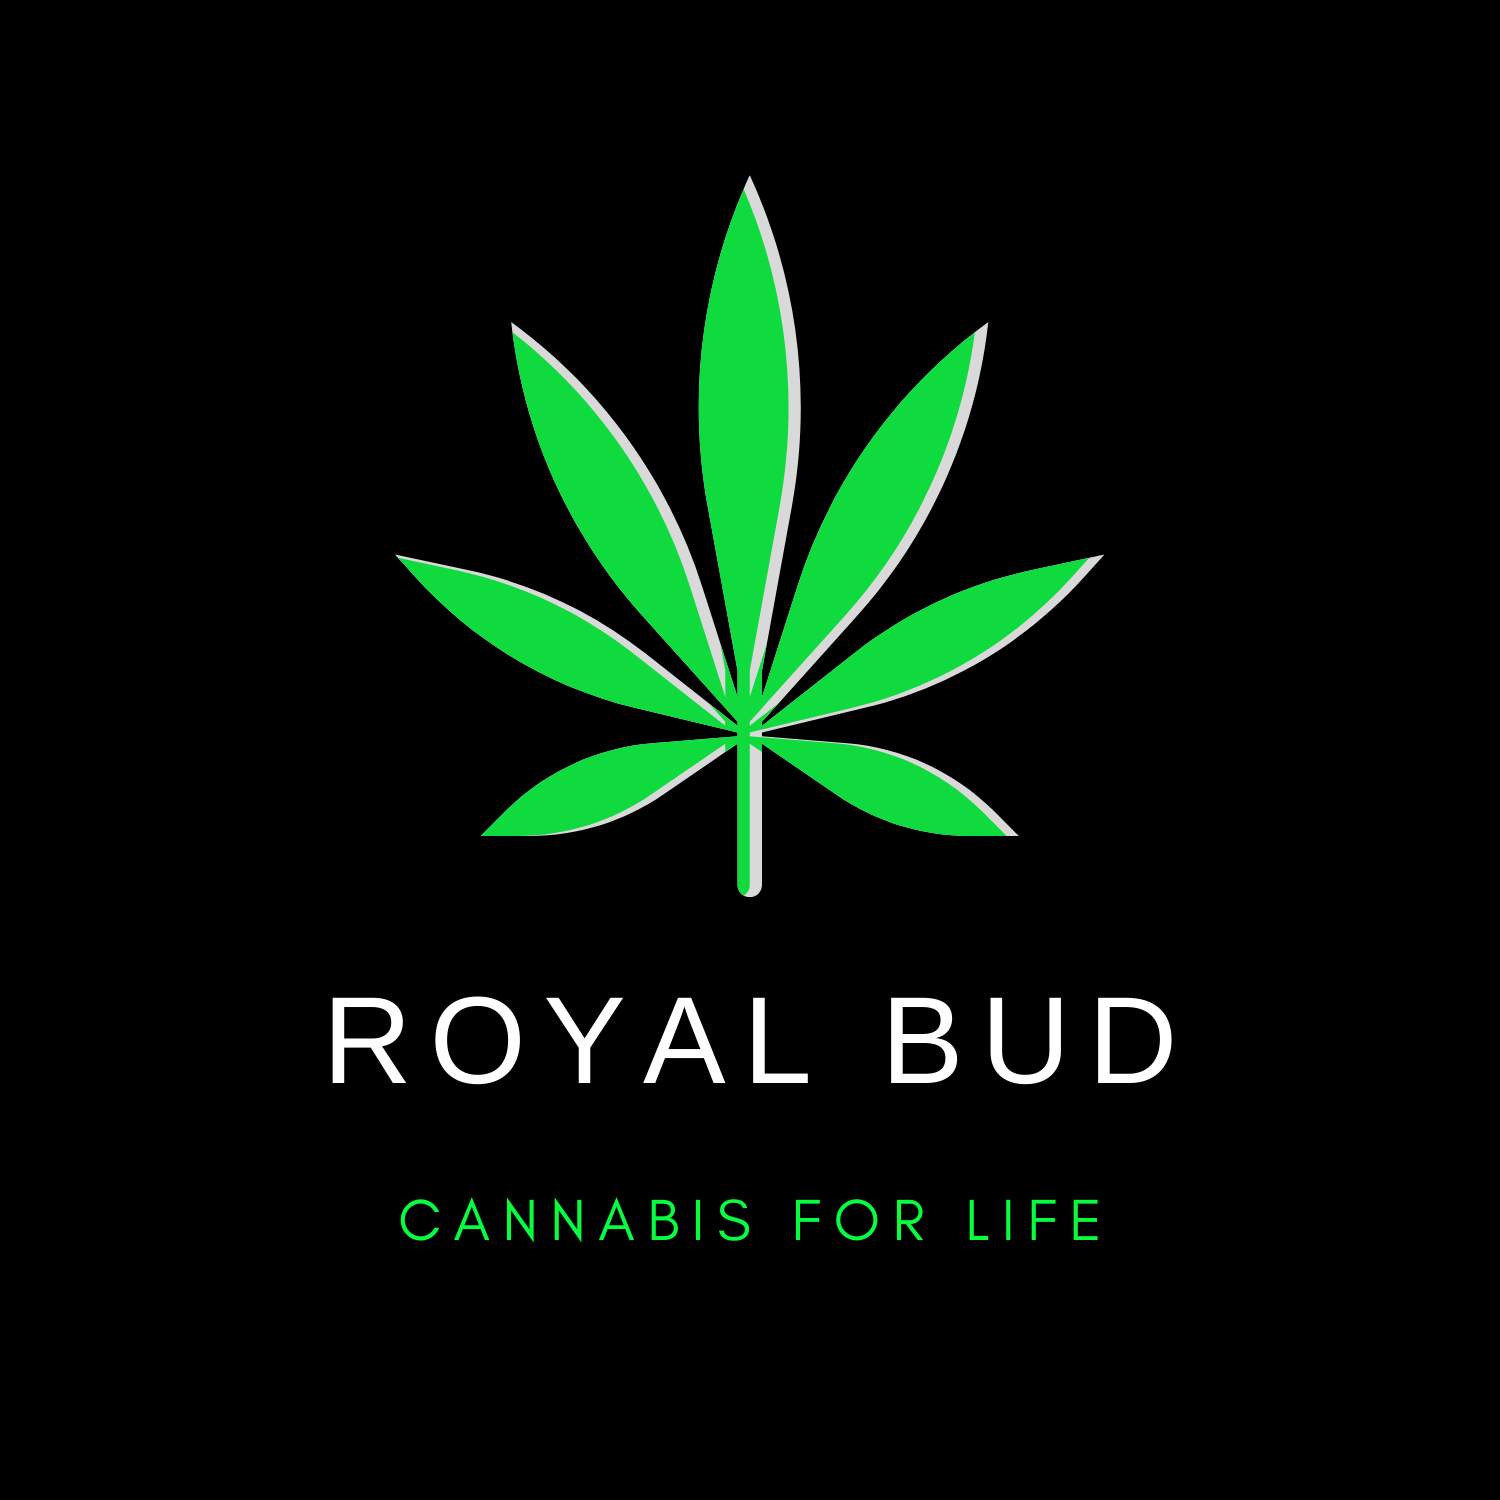 Steven Royal Bud